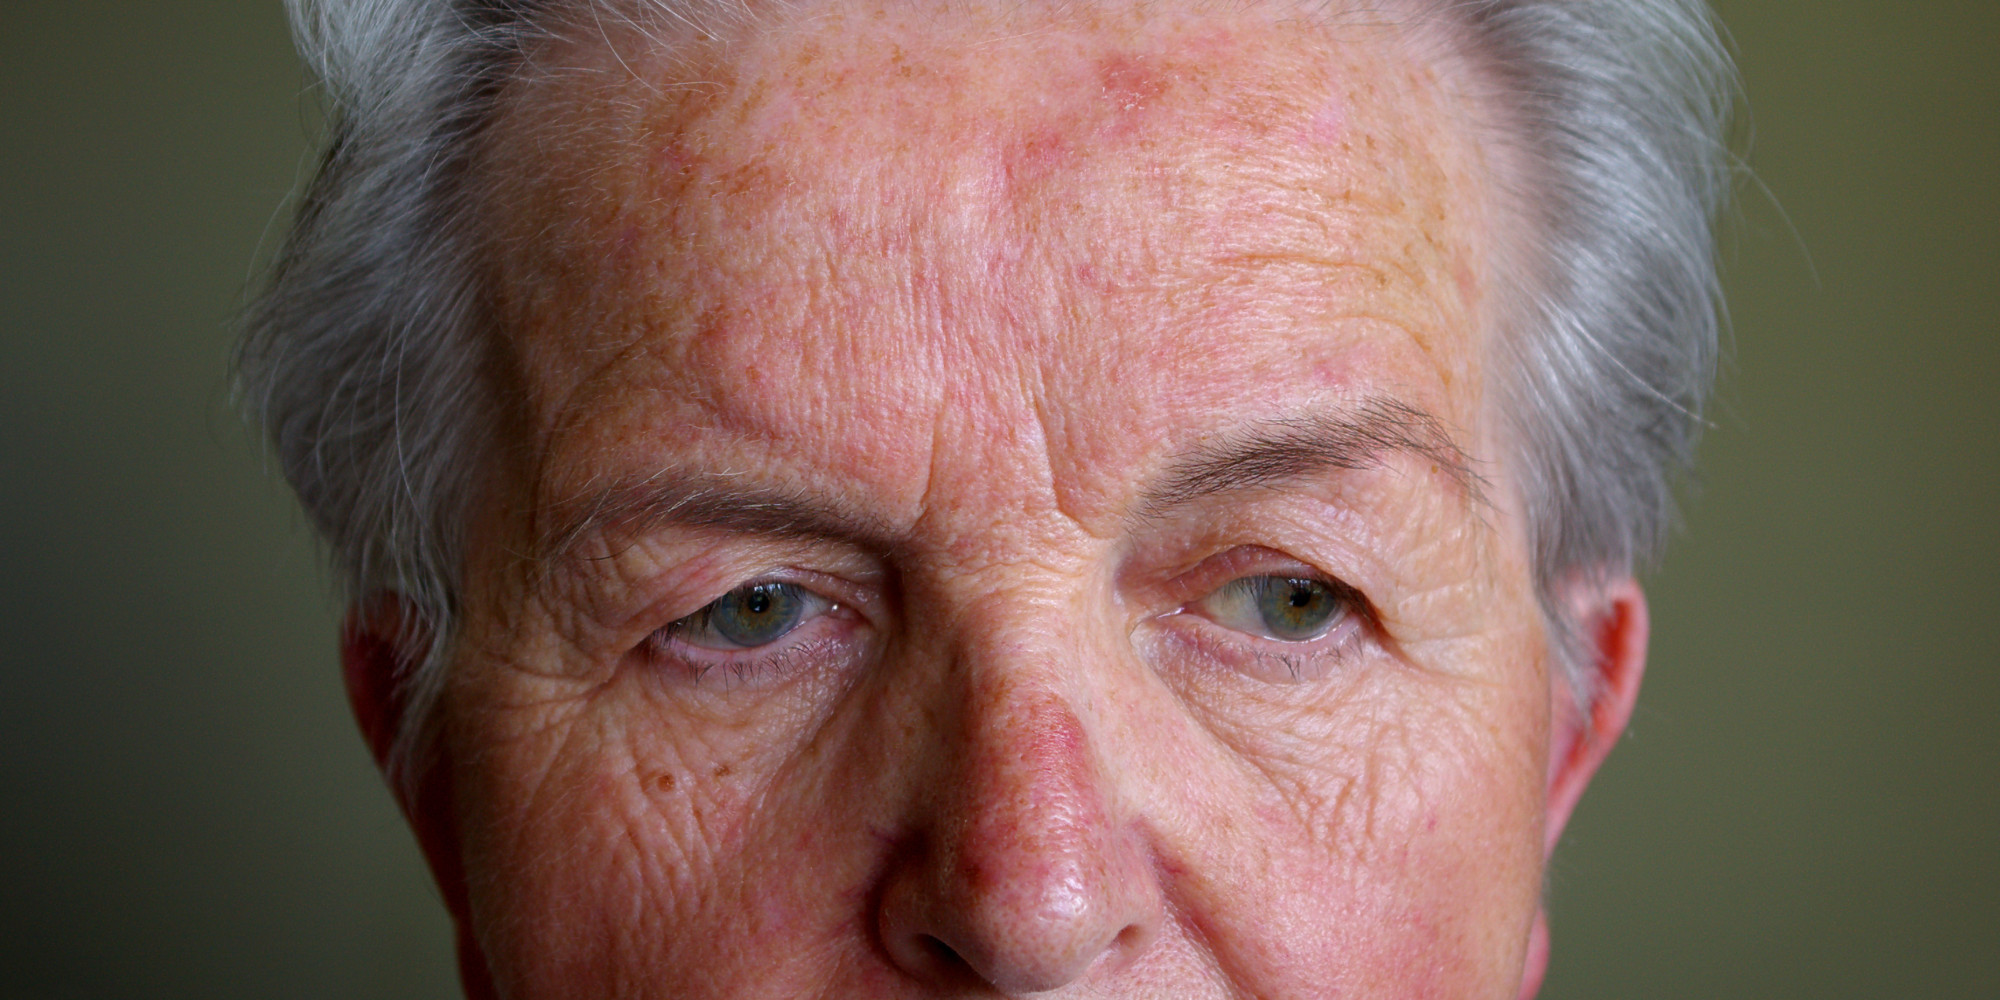 How To Treat Rosacea (Part 1)